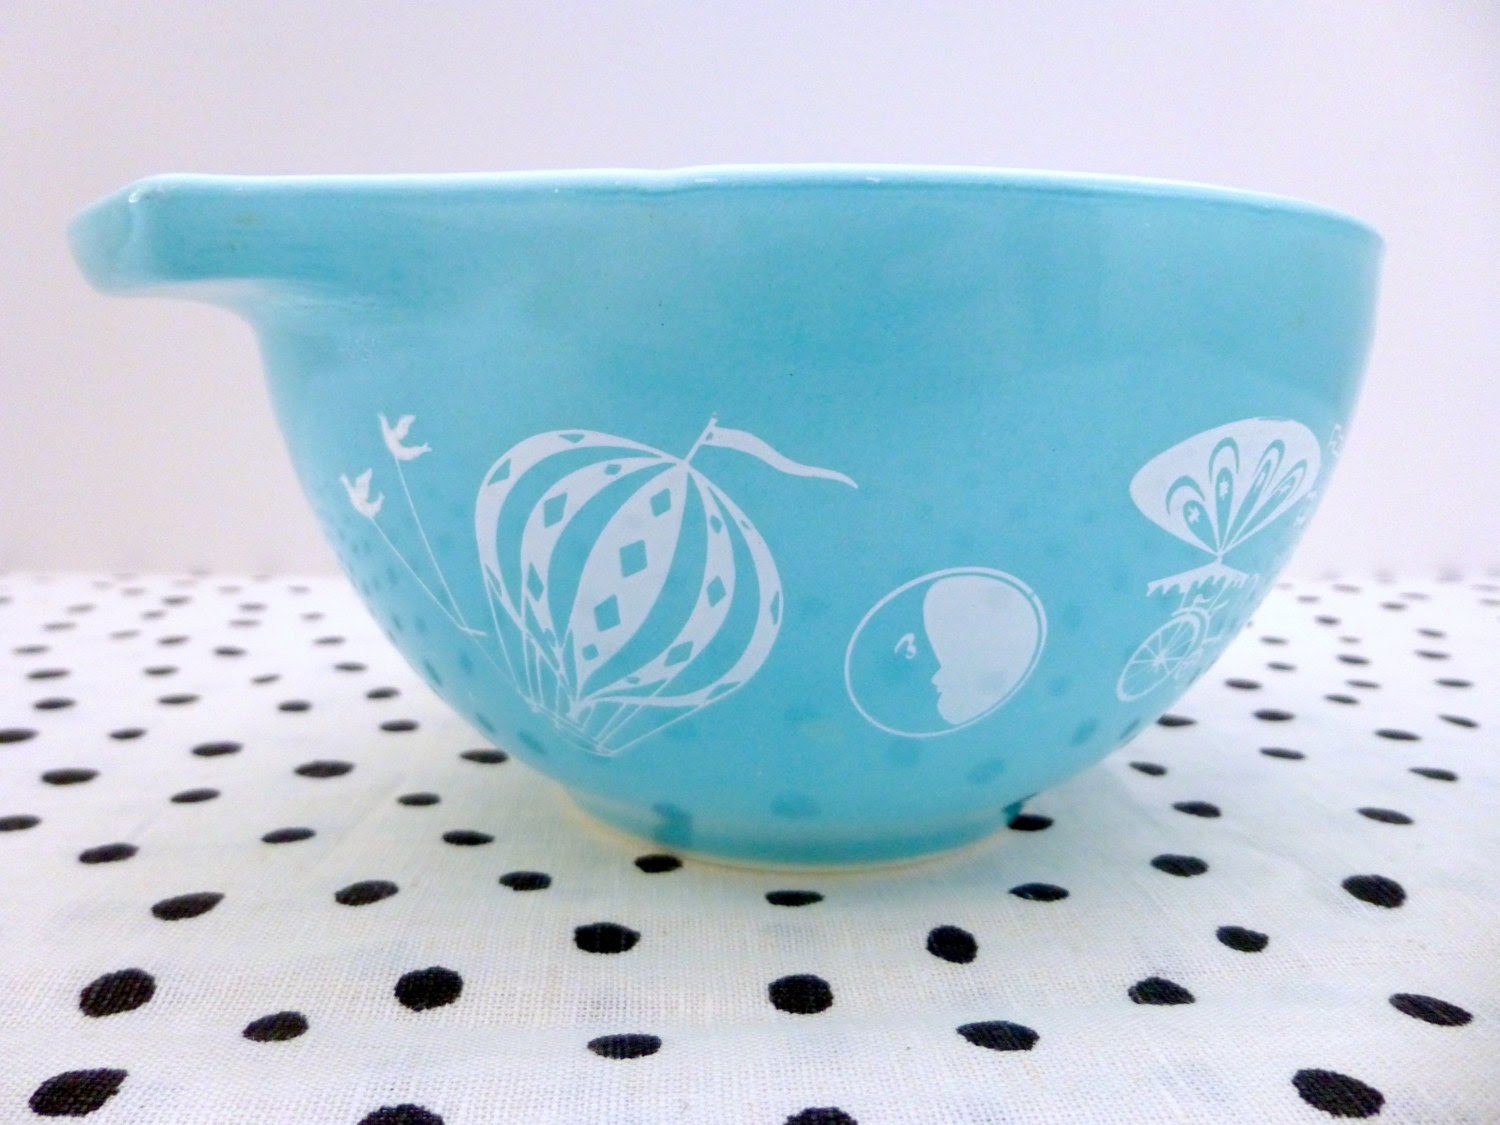 Vintage Pyrex 1950s Turquoise Hot Air Balloons 1.5 Pint Dip Bowl - ForestHillsVintage